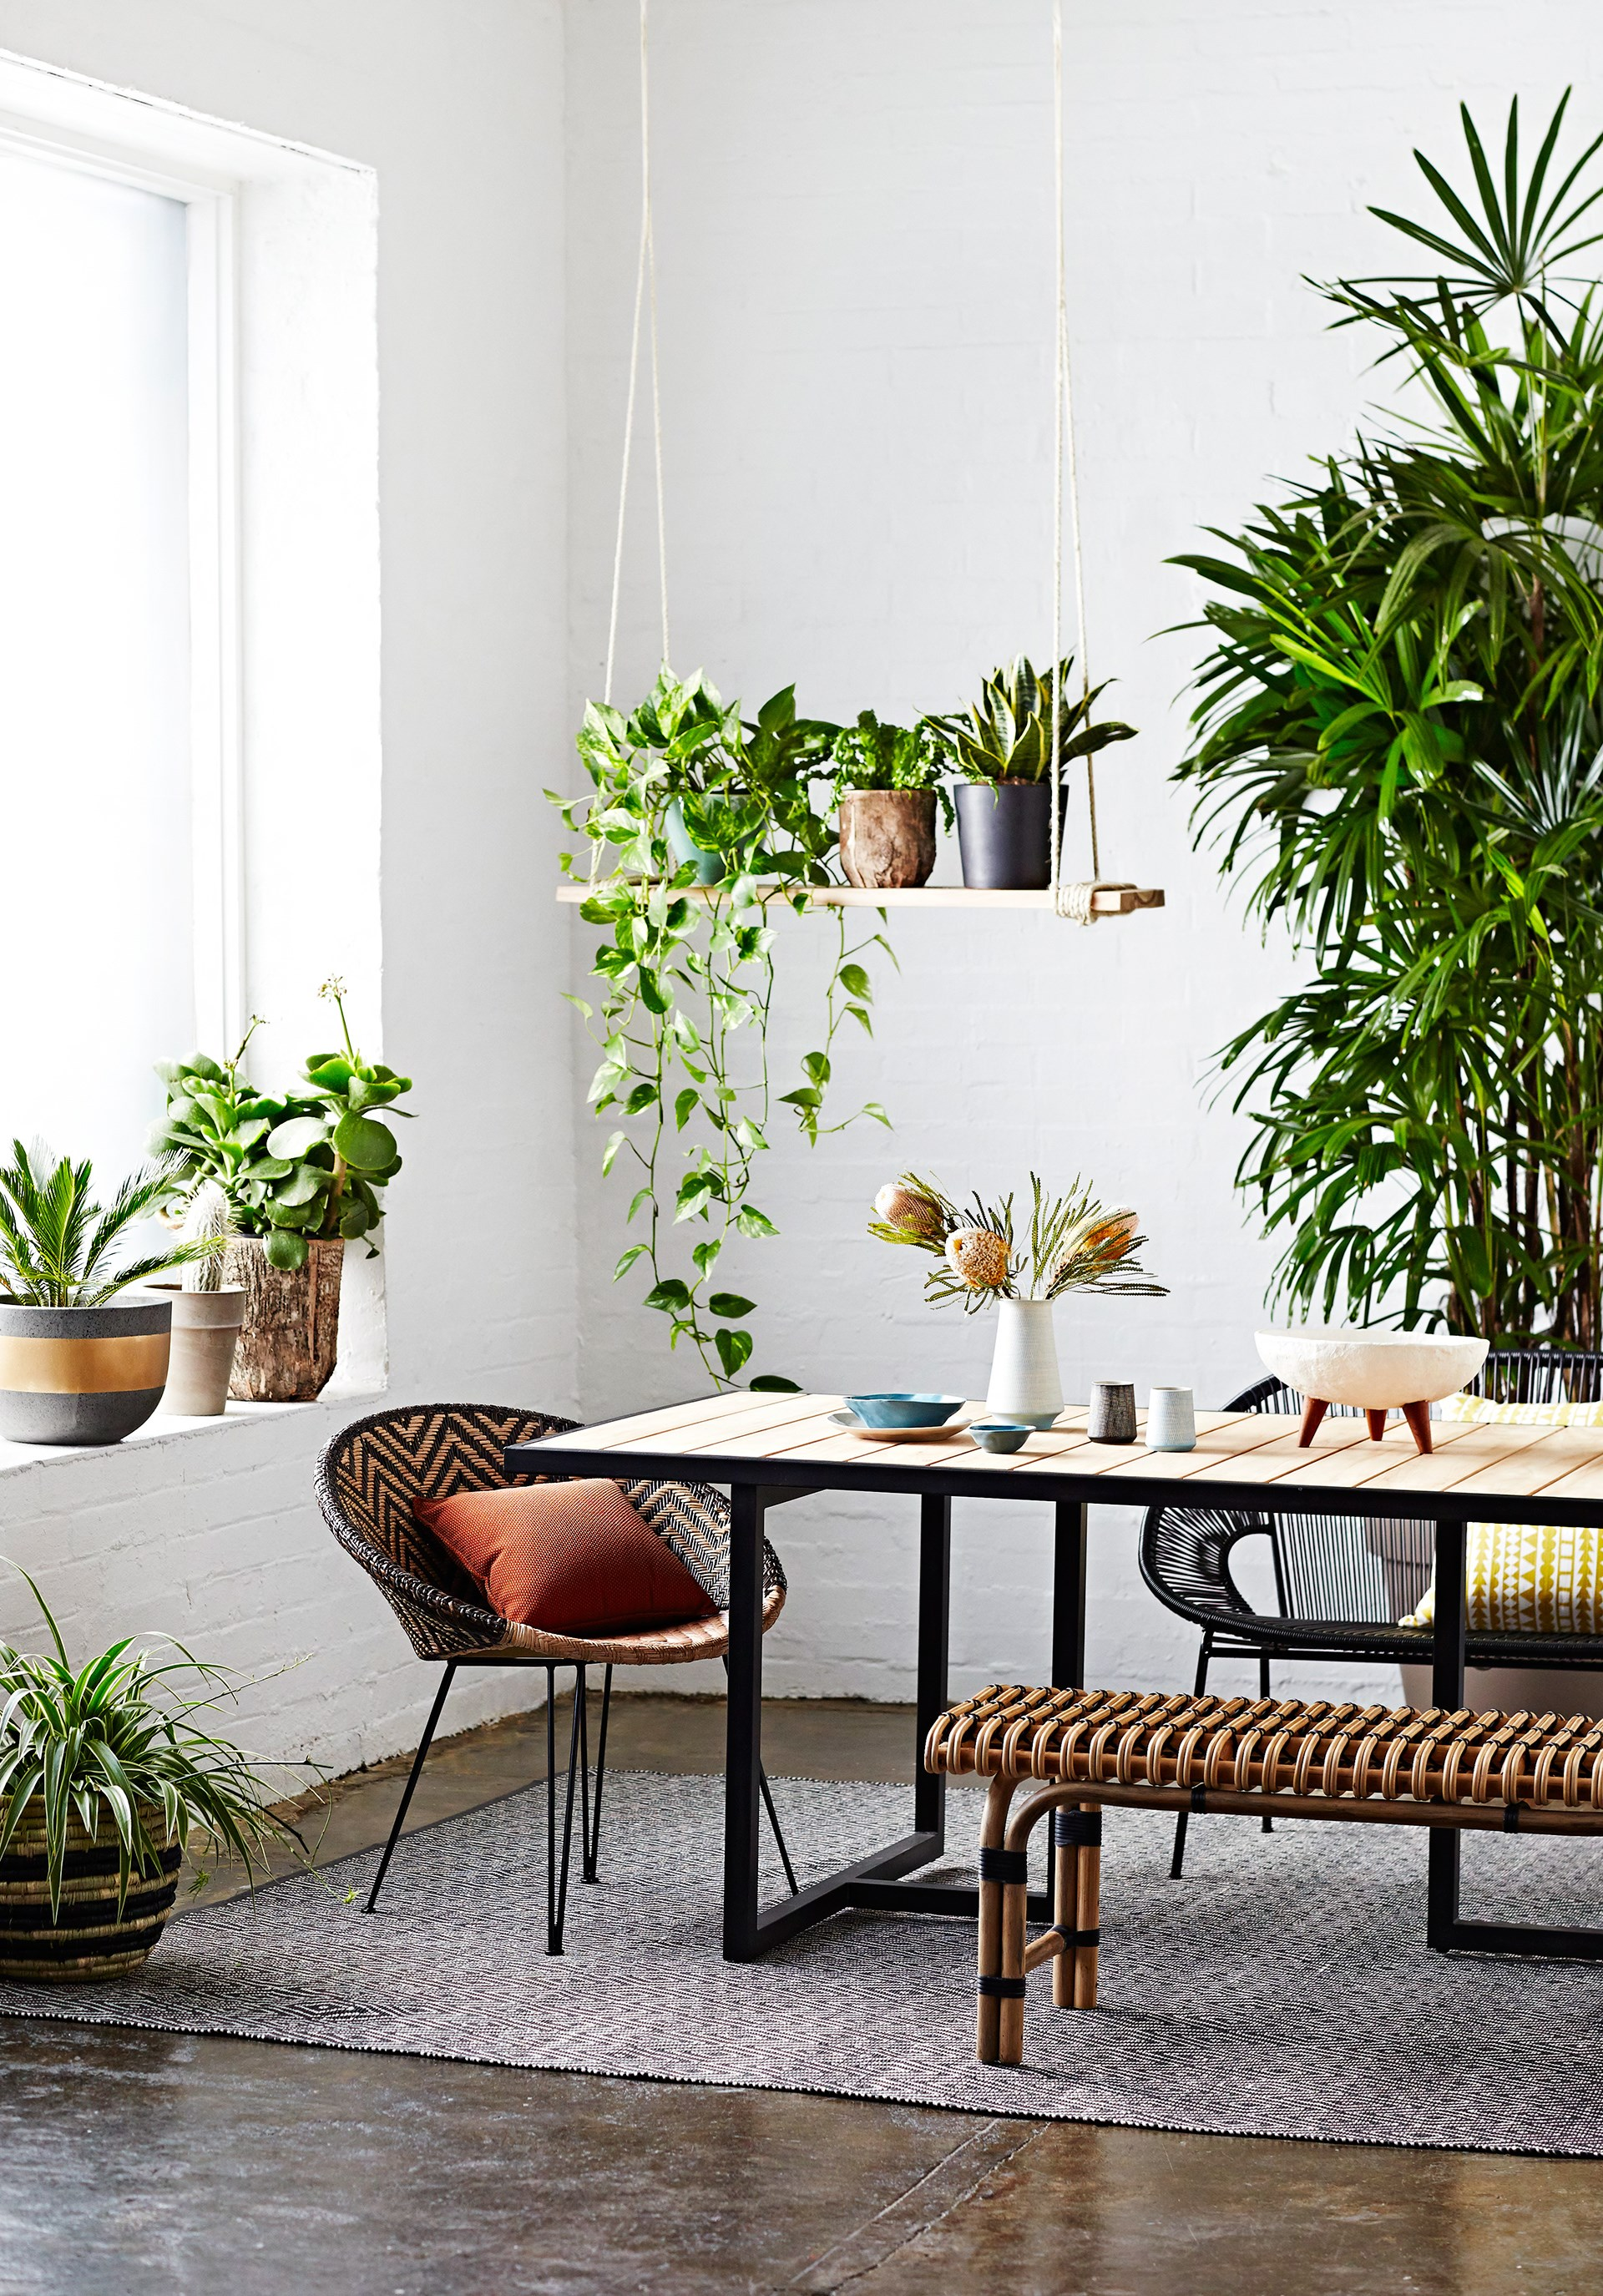 Don't be afraid to bring your garden indoors. Photo: Mike Baker / *Australian House & Garden*